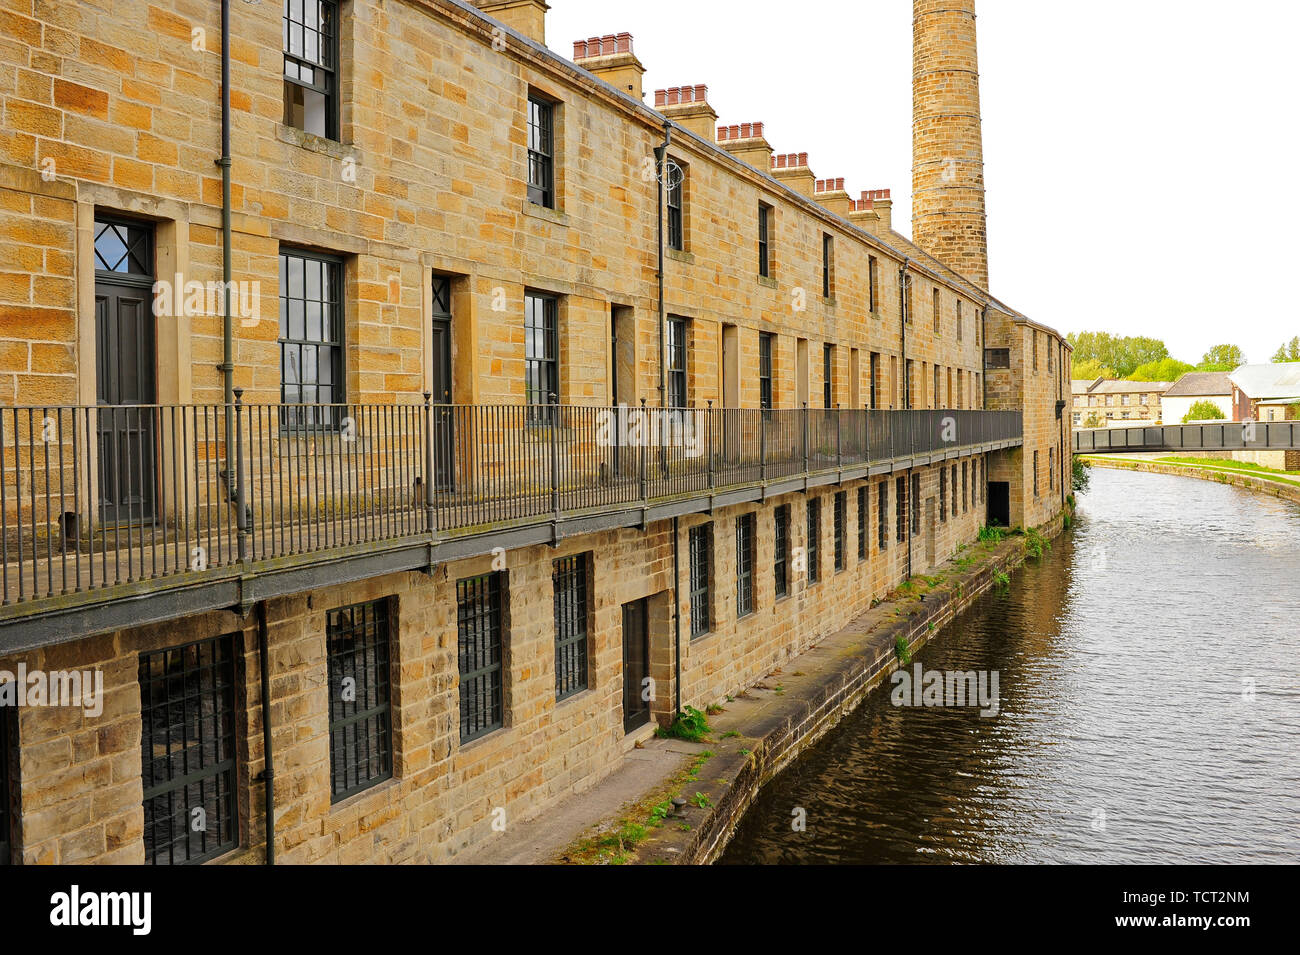 Slater Terrace formerly a weaving shed now renovated office space on the banks of the Leeds Liverpool canal at Burnley,UK - Stock Image